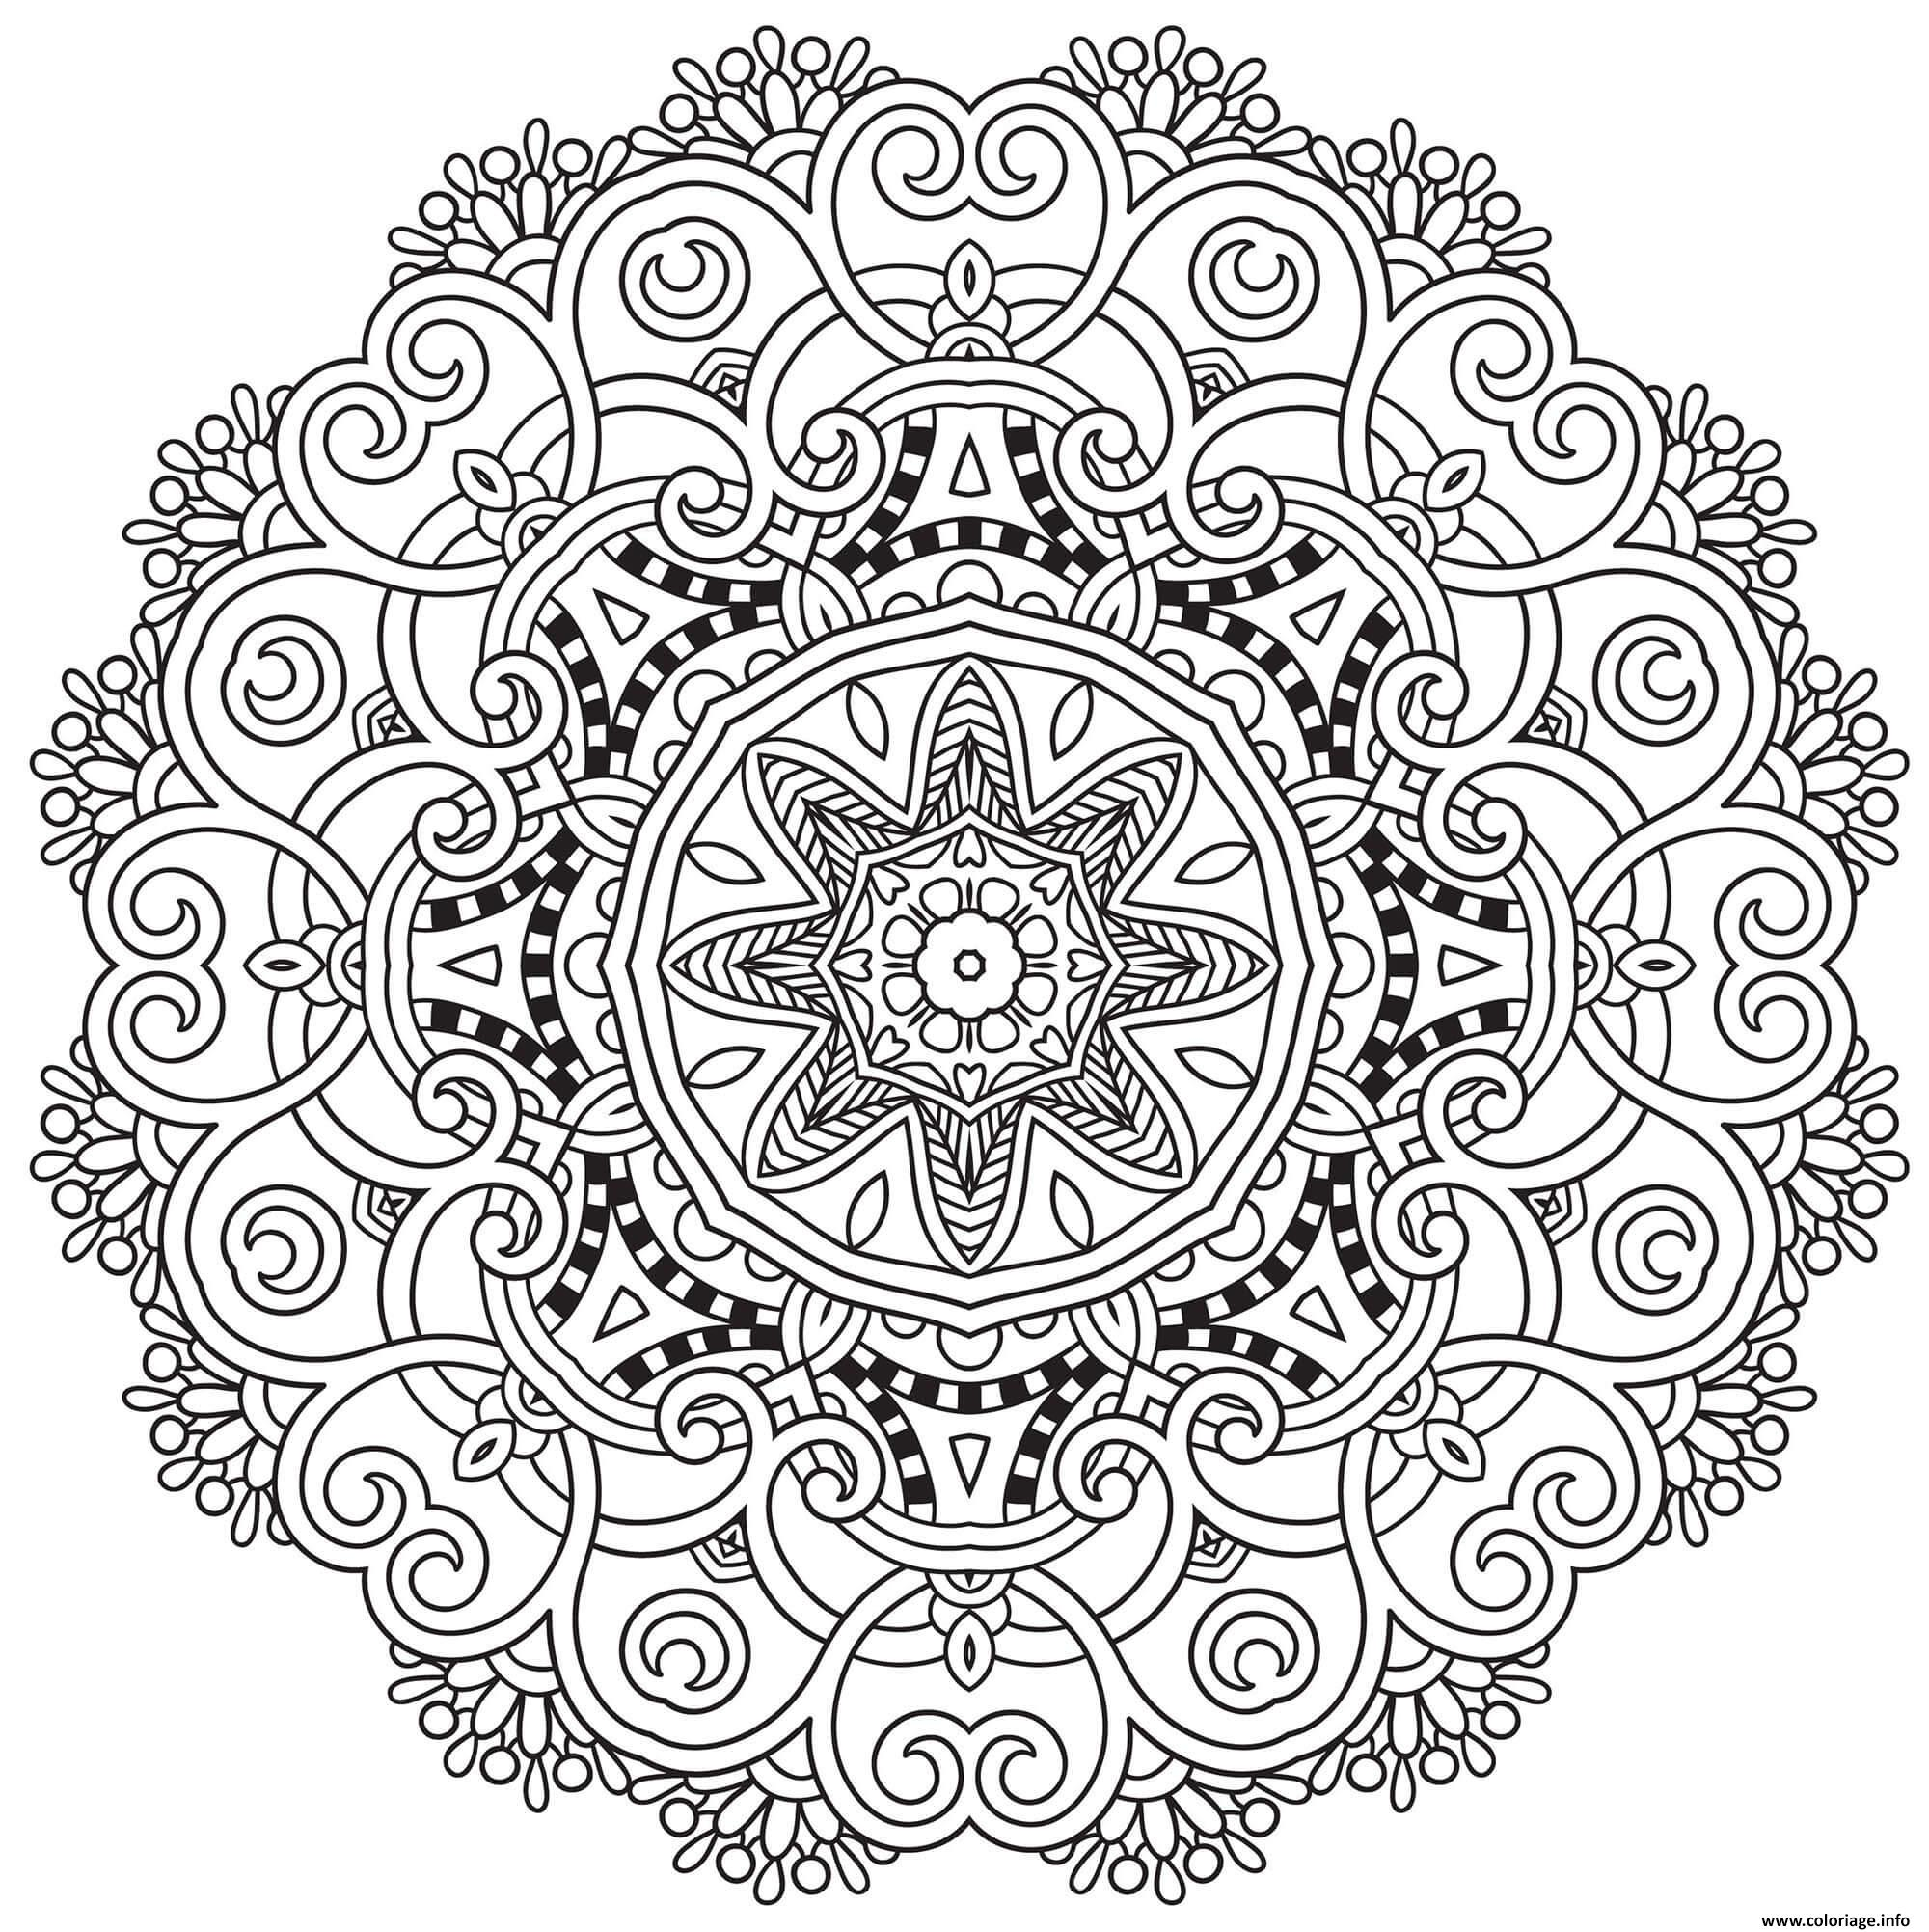 Dessin incredible mandala adulte Coloriage Gratuit à Imprimer